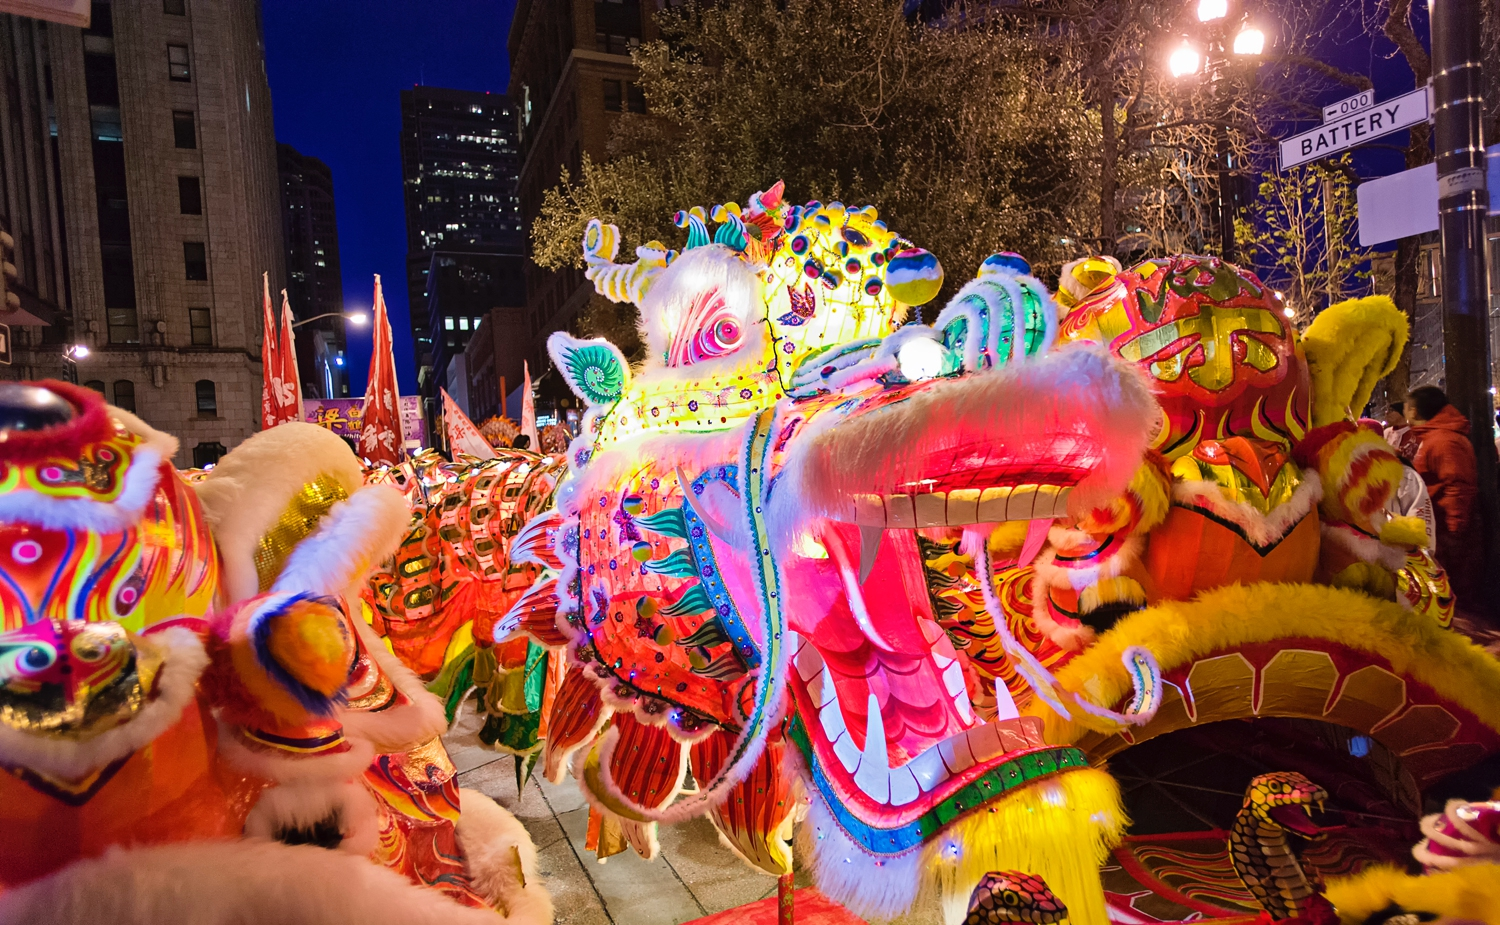 The dragon dance of 2013 in Chinatown during the Chinese New Year is very colorful and brought a lot of life to the city